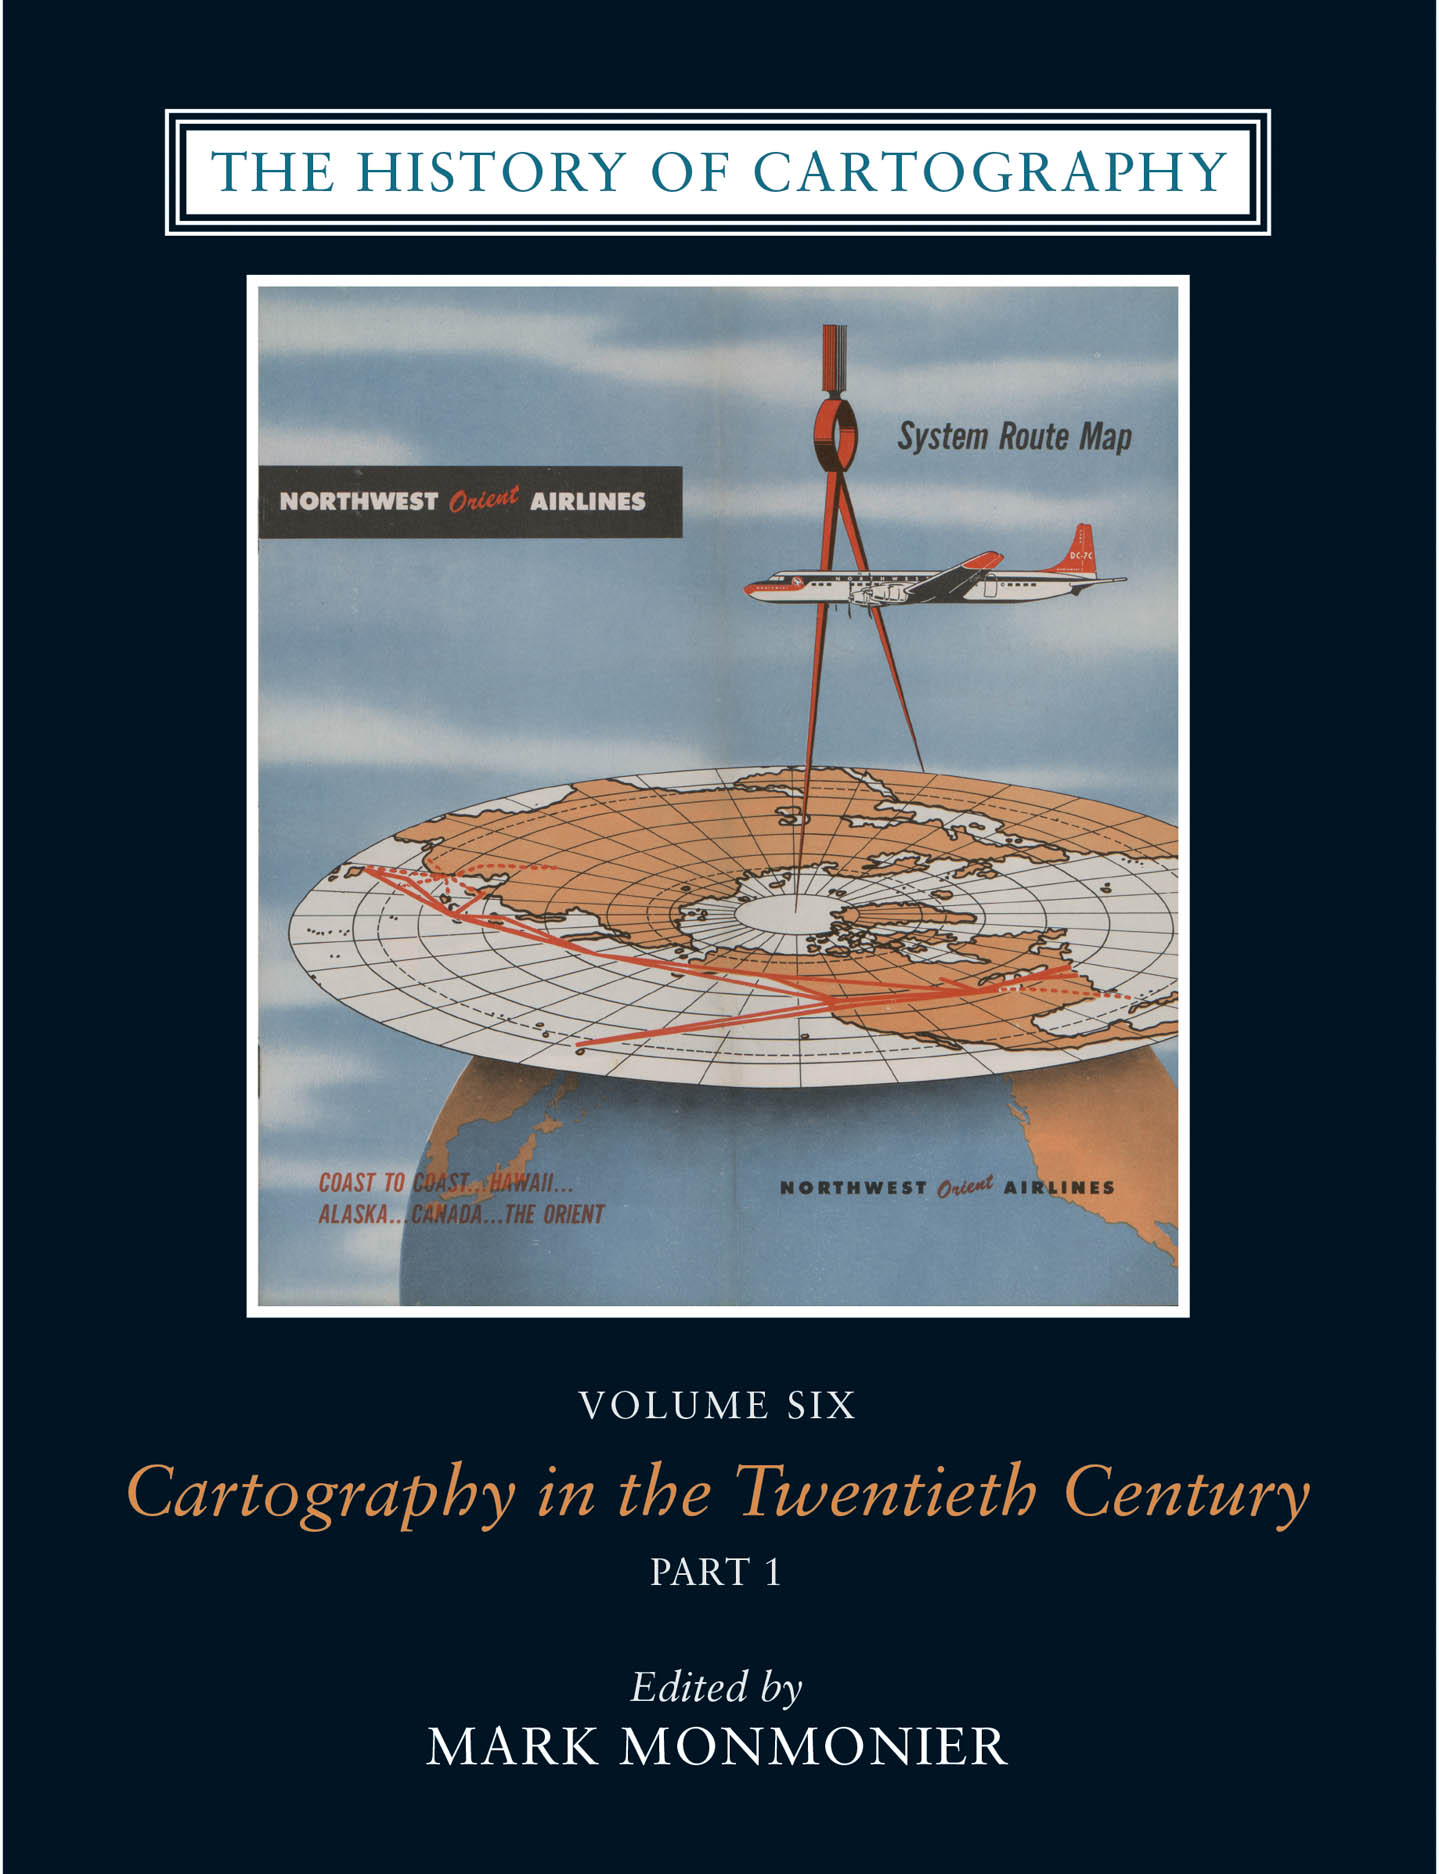 The History of Cartography, Volume 6: Cartography in the Twentieth Century